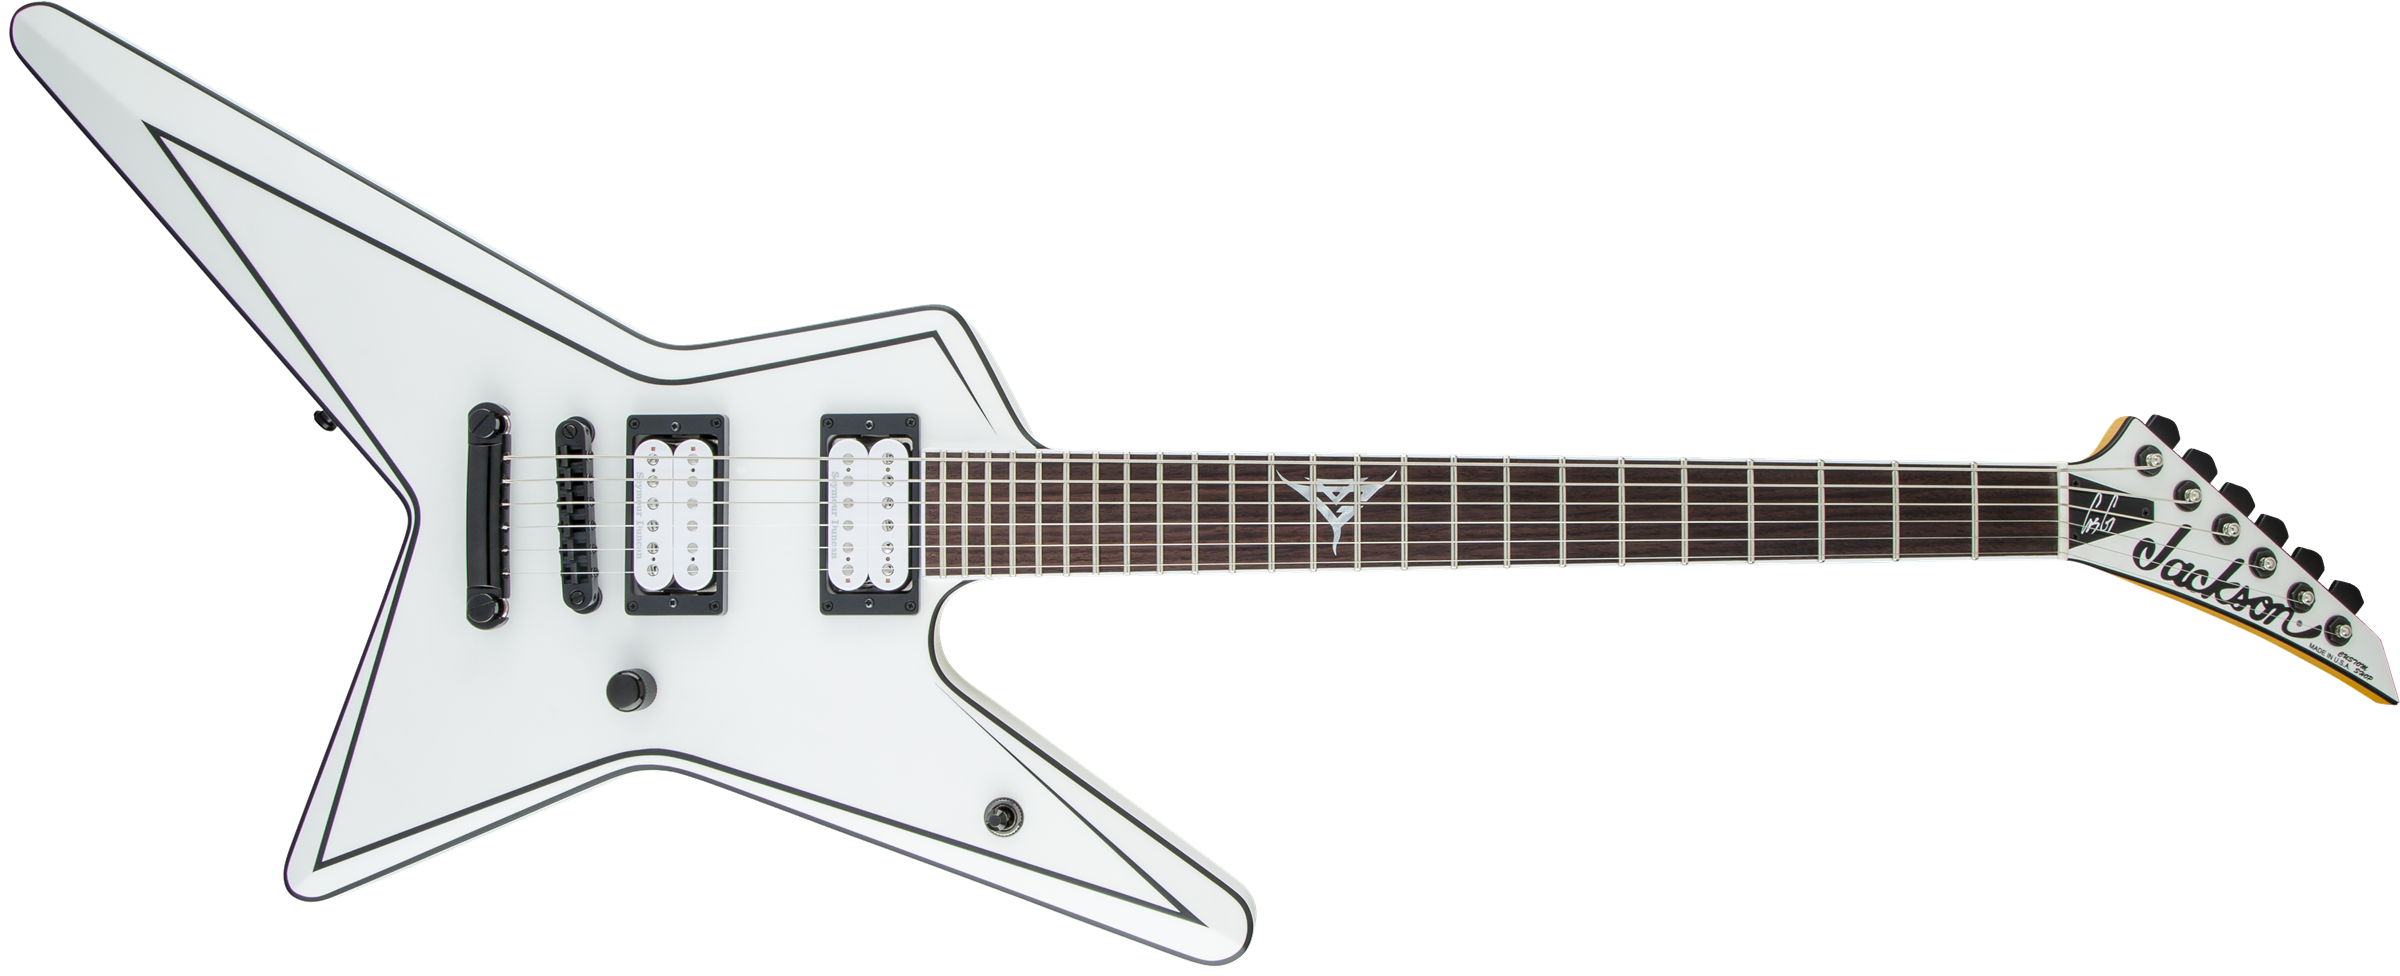 Star Usa Signature Gus G Star Rosewood Fingerboard Satin White